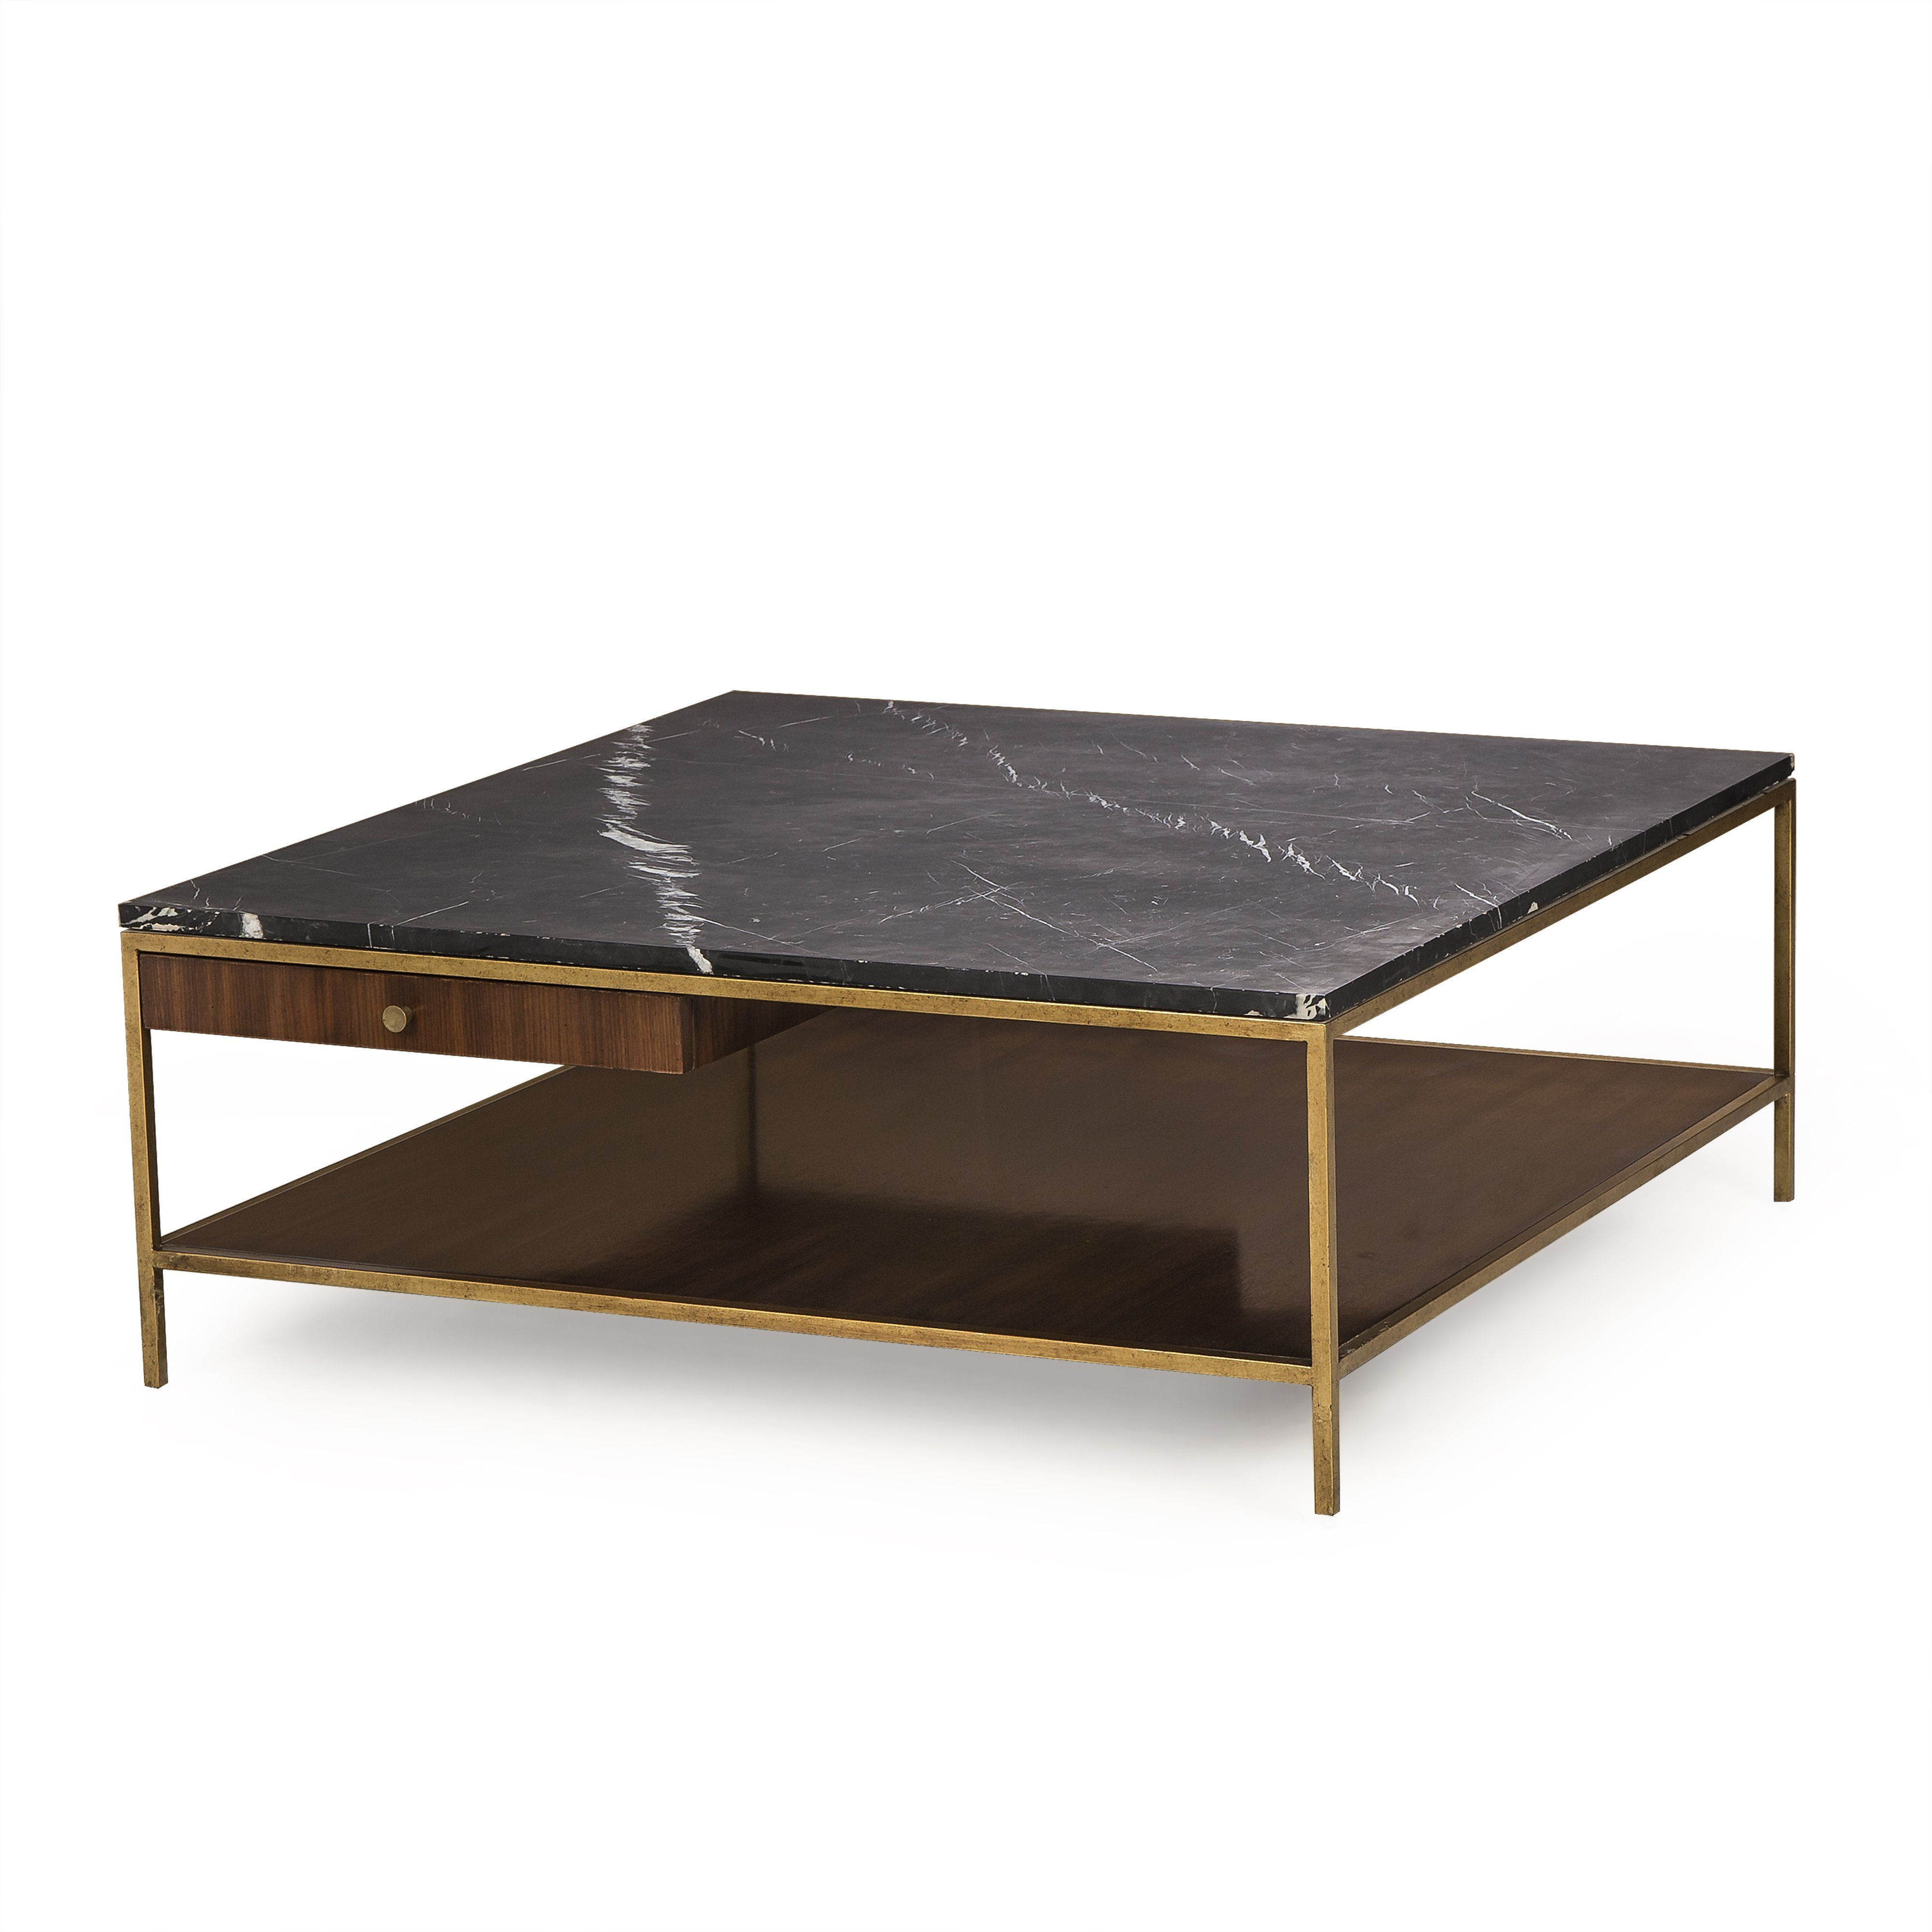 Copeland Coffee Table Large Square Coffee Table Square Large Square Coffee Table Mid Century Modern Coffee Table